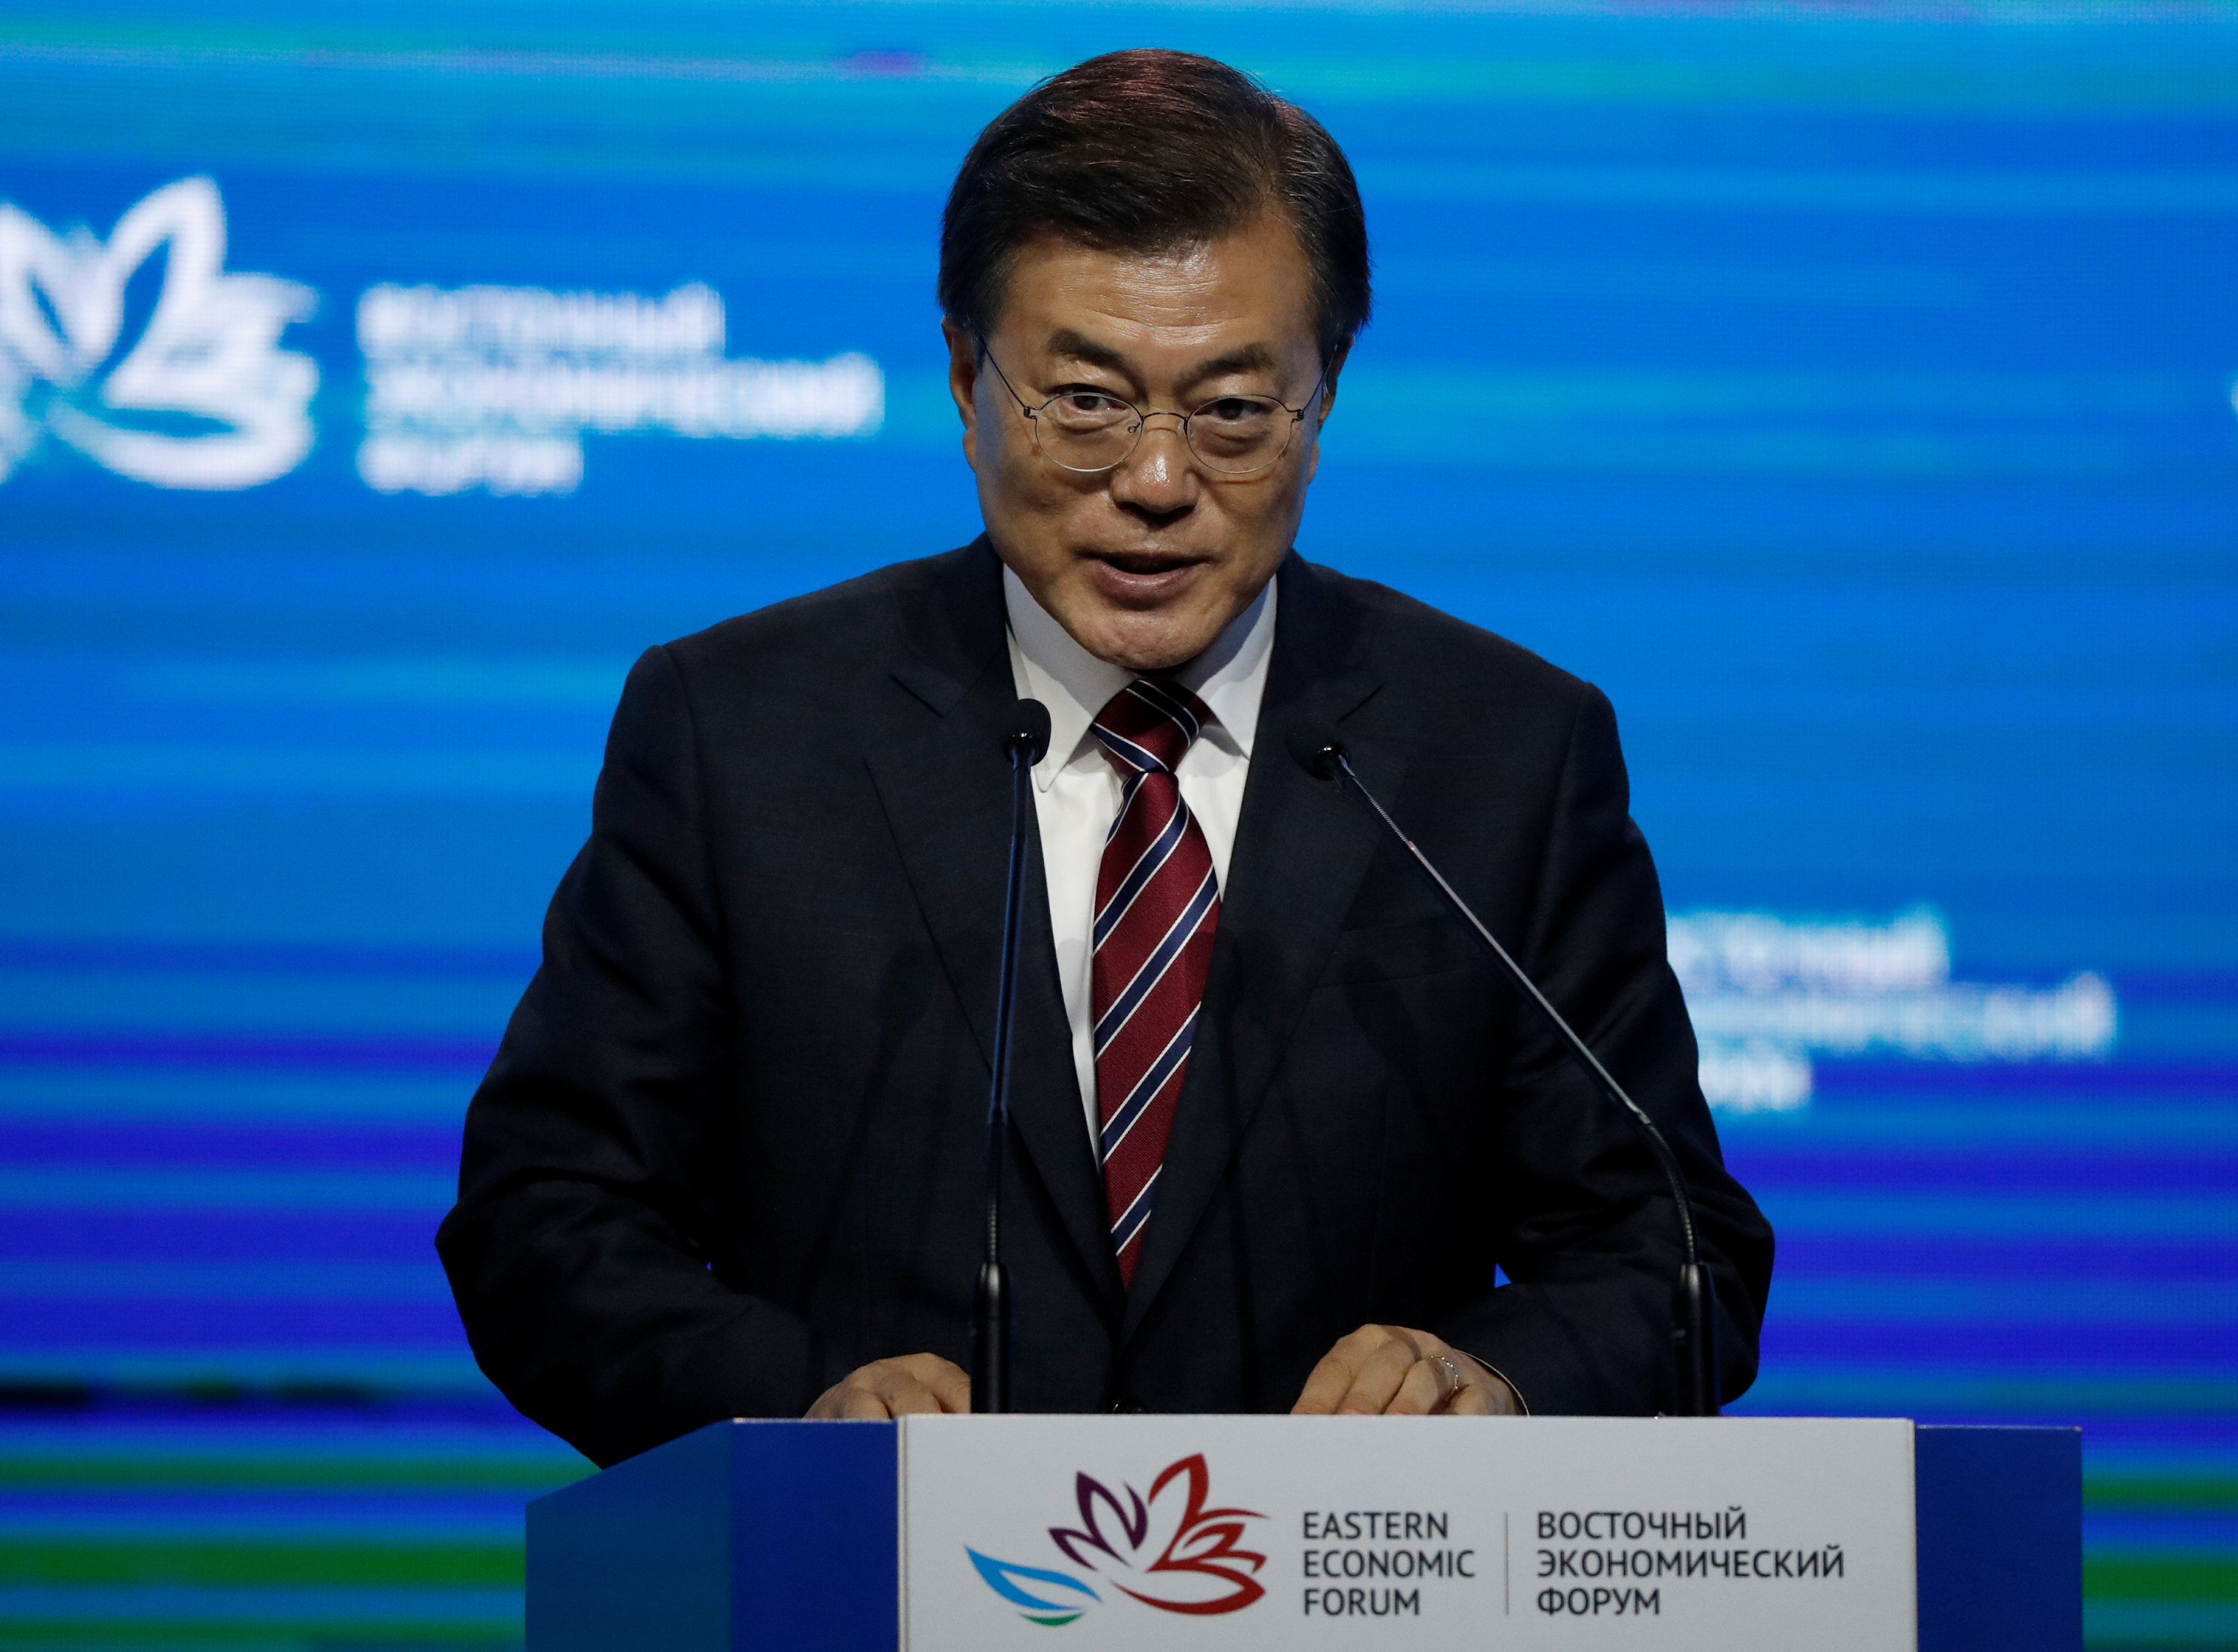 South Korean President Moon Jae-in delivers a speech during a session of the Eastern Economic Forum in Vladivostok, Russia on Sept. 7, 2017. (REUTERS/Sergei Karpukhin)